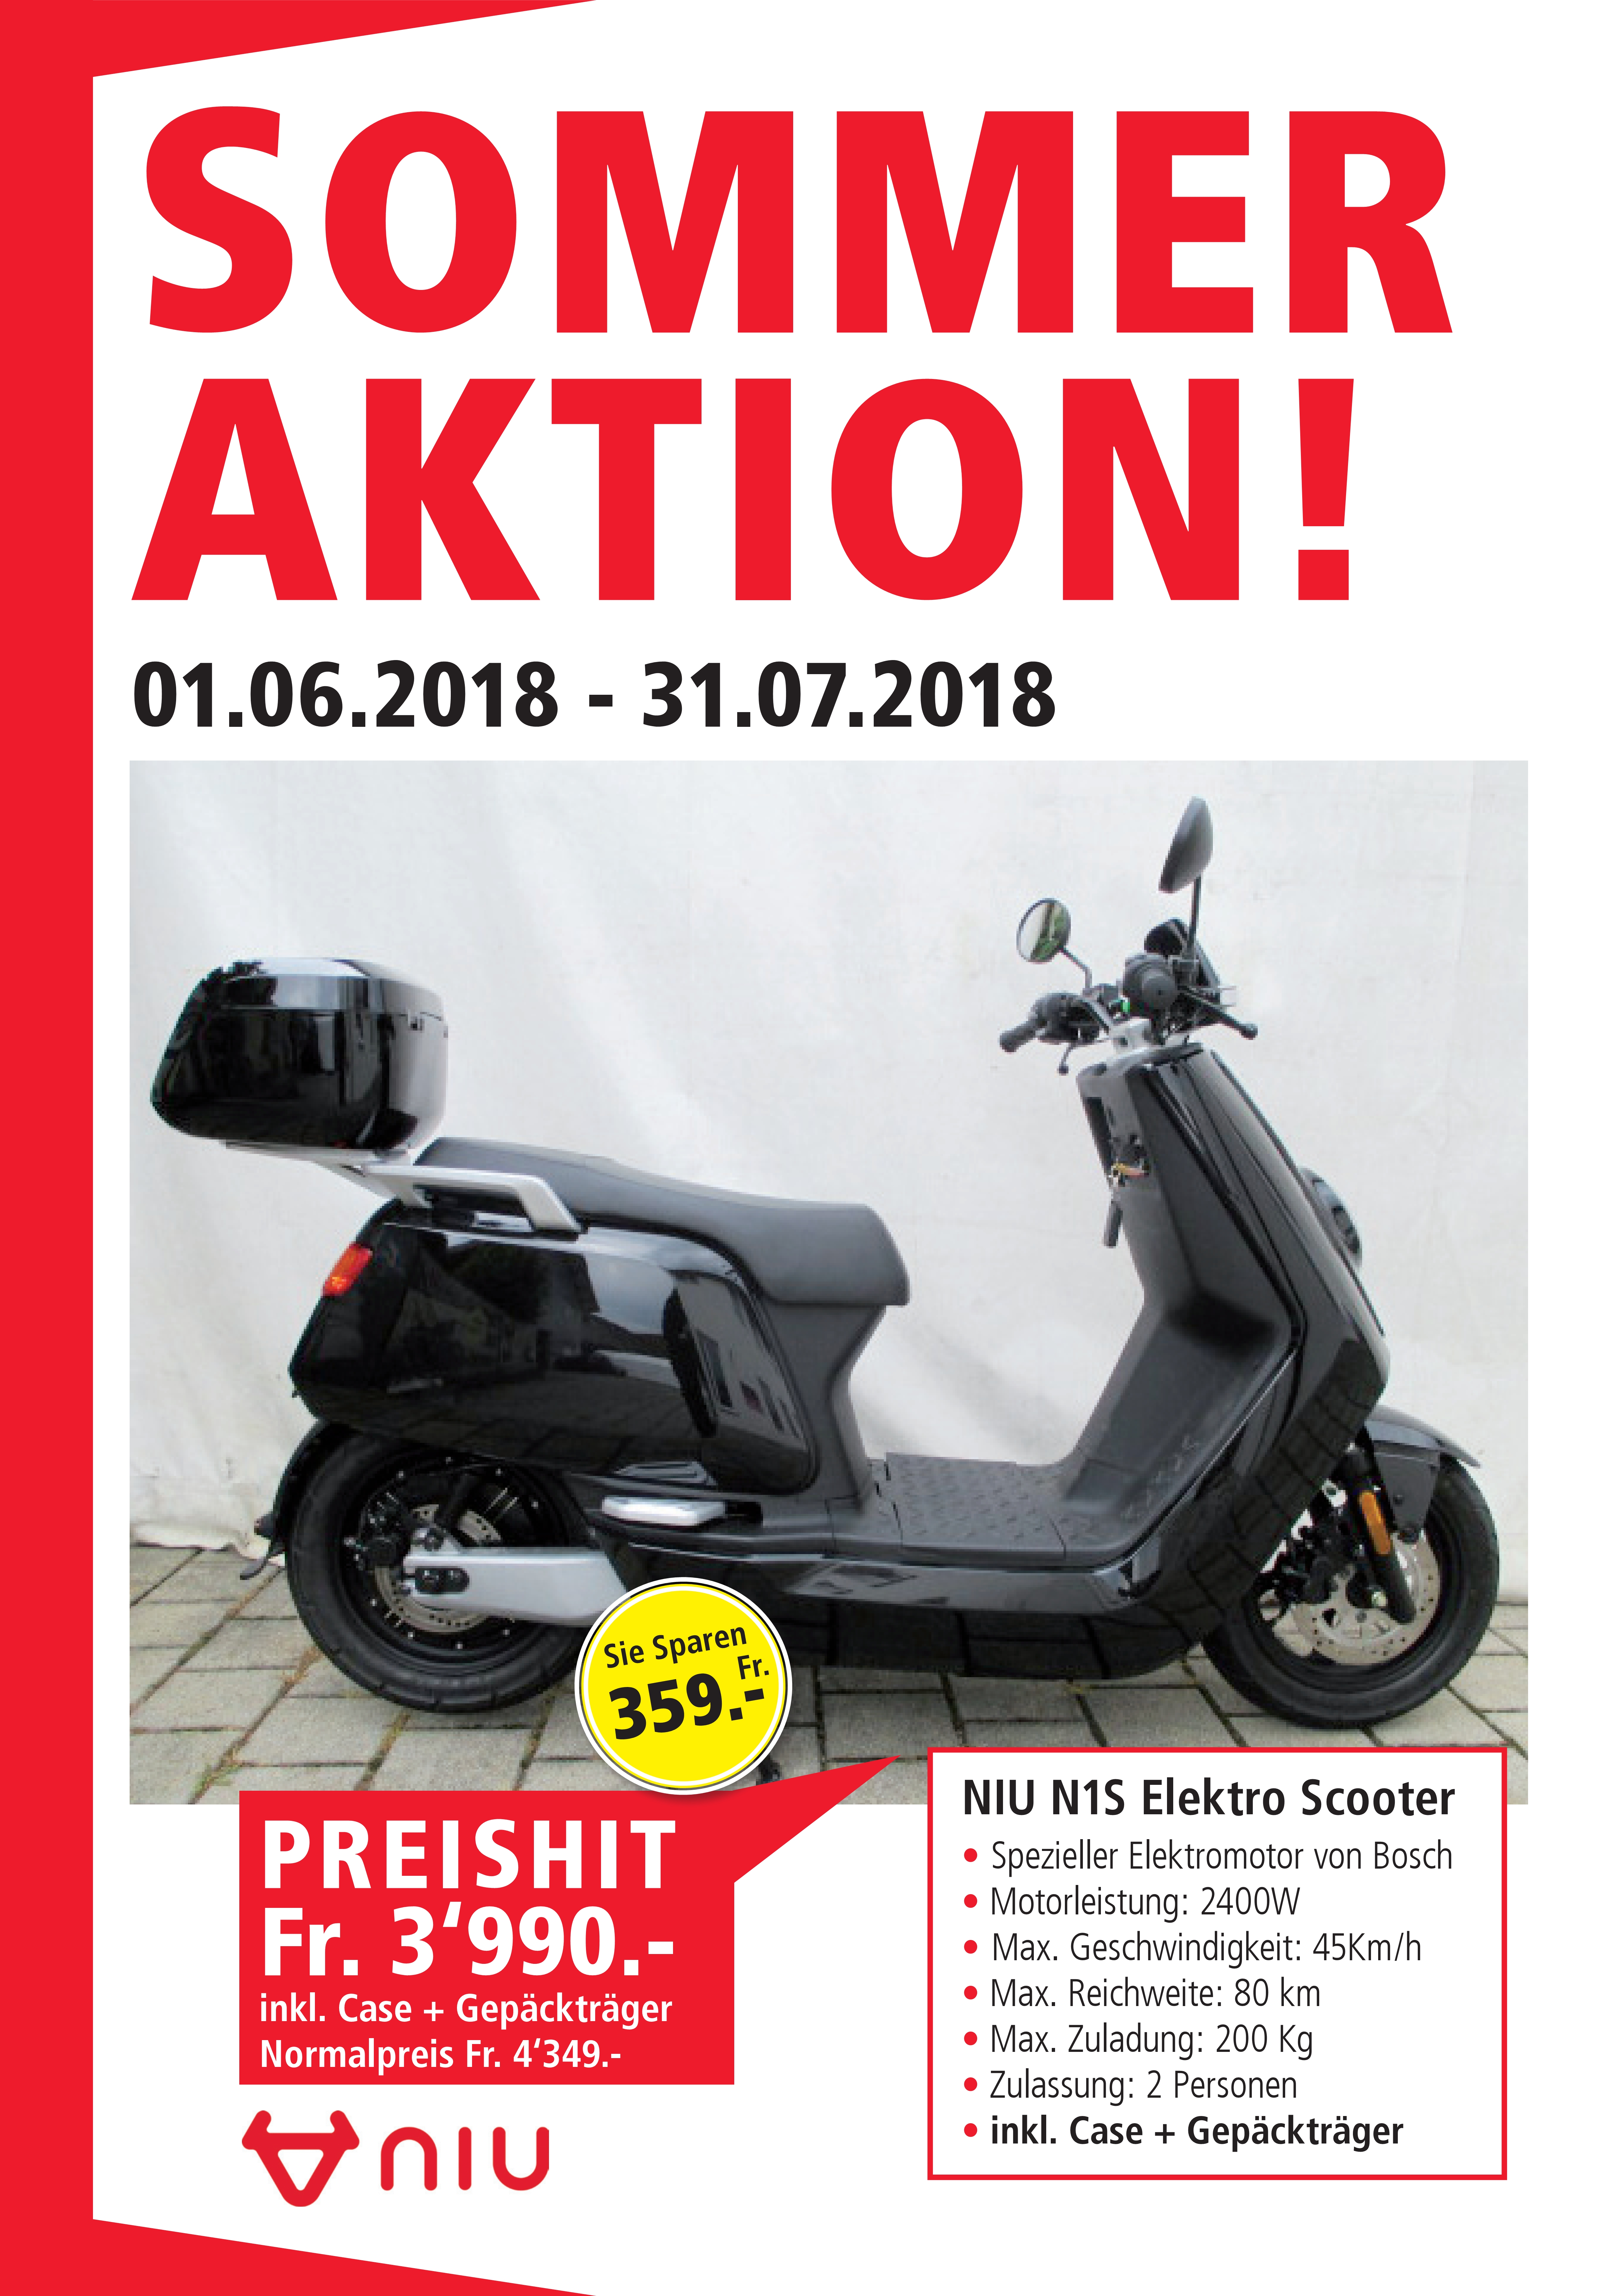 niu elektroroller 45 km h helmpflicht elektro scooter. Black Bedroom Furniture Sets. Home Design Ideas